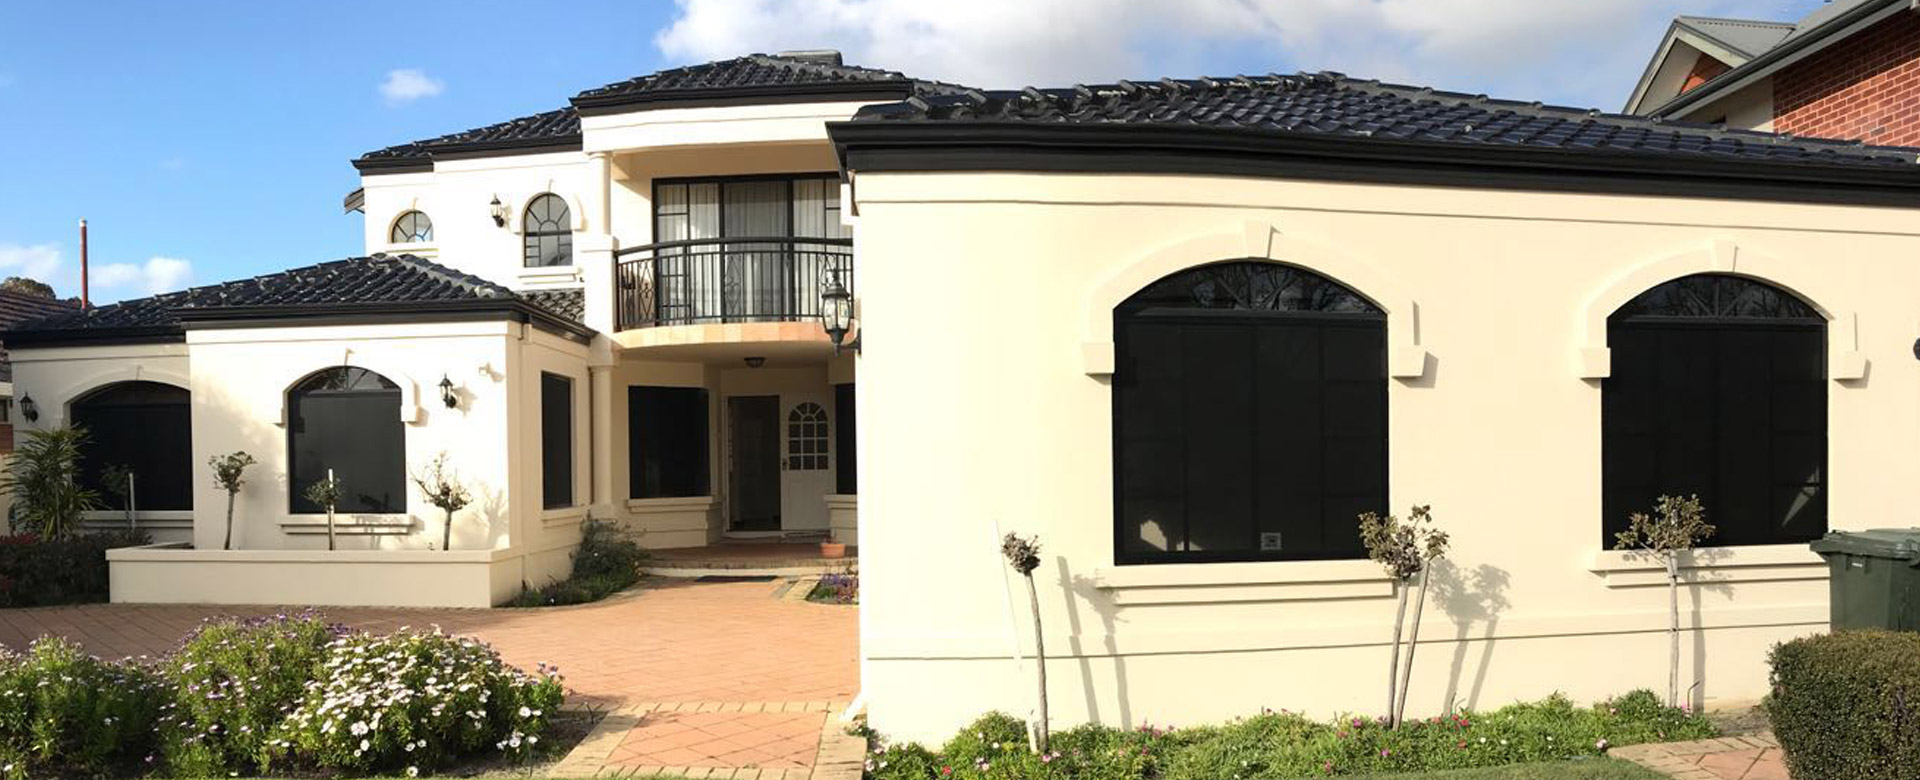 Mackson: Fencing Perth | Gates, Patios & Security ...